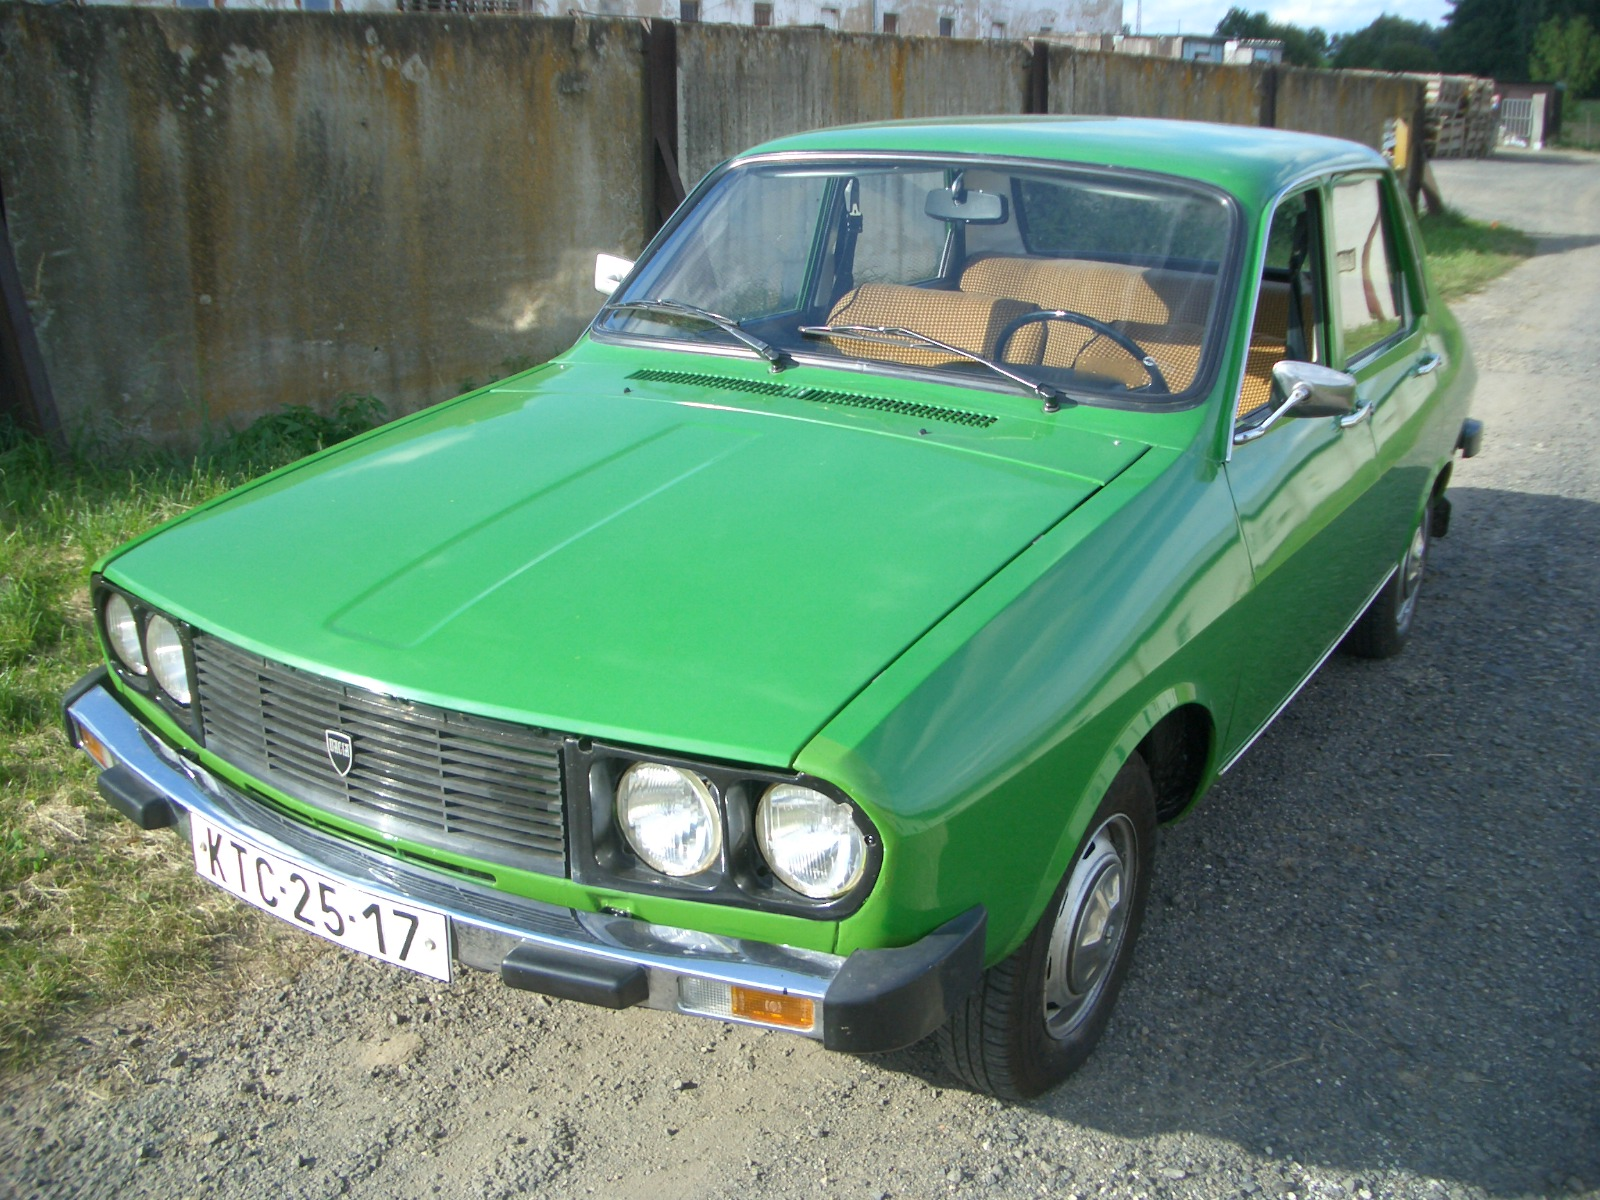 Pictures of dacia 1310 1990 #10